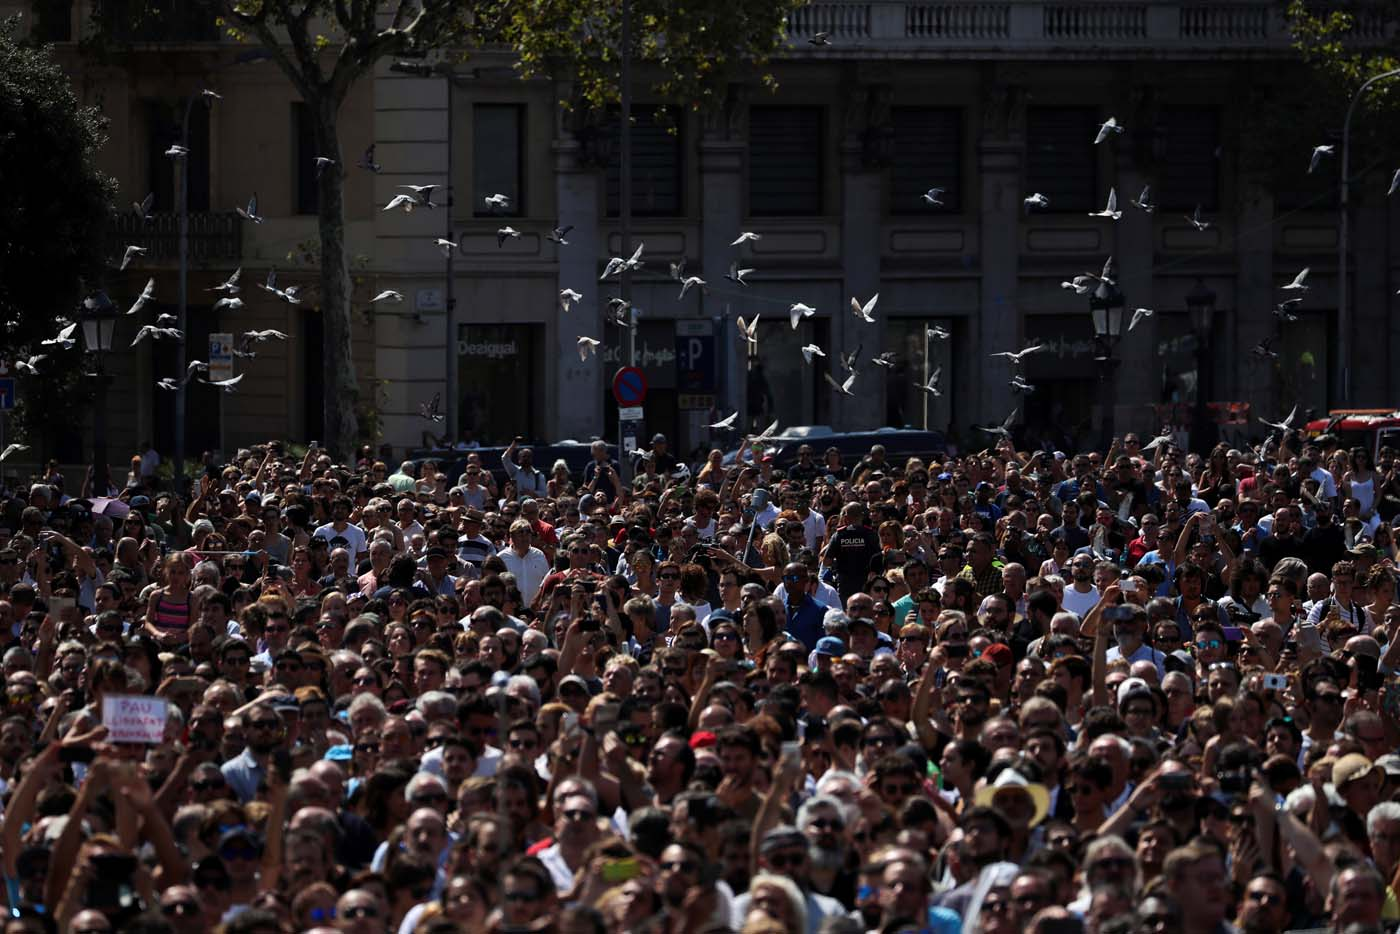 Doves fly over people gathered to observe a minute of silence at Placa de Catalunya, a day after a van crashed into pedestrians at Las Ramblas in Barcelona, Spain August 18, 2017. REUTERS/Susana Vera